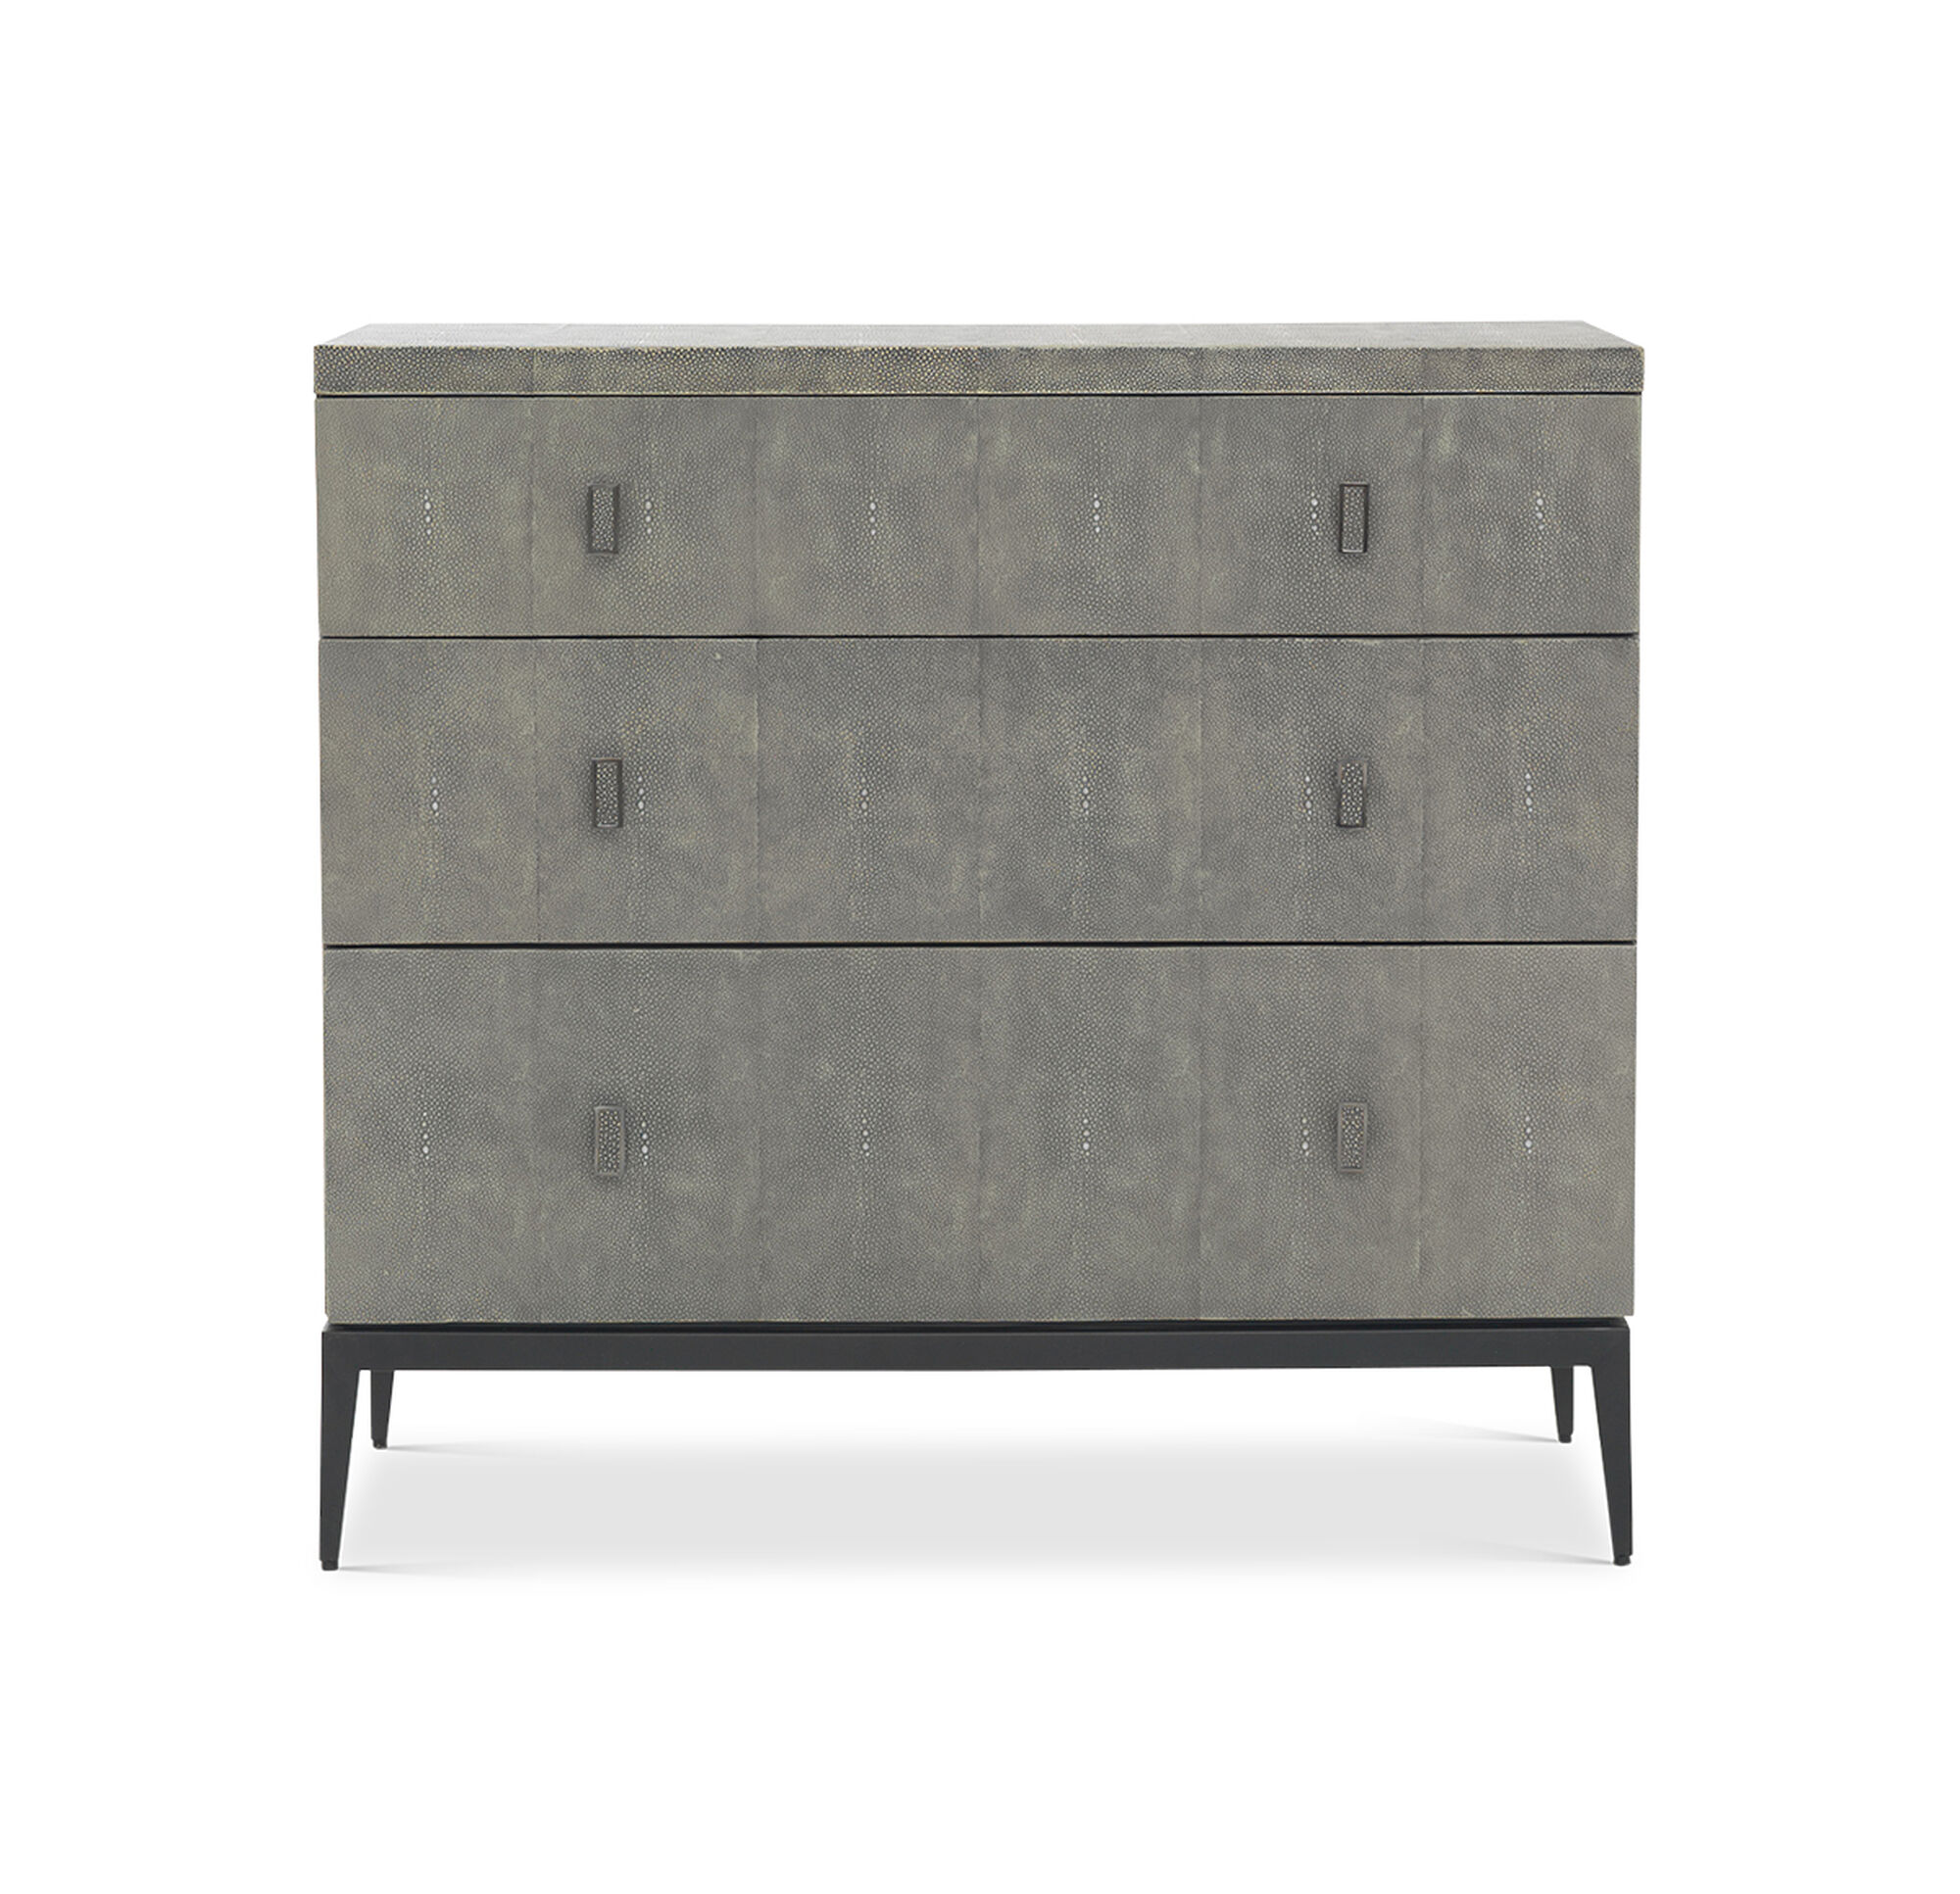 chest drawers living buy of storage small image style drawer fusion from libra warehouse multicoloured furniture